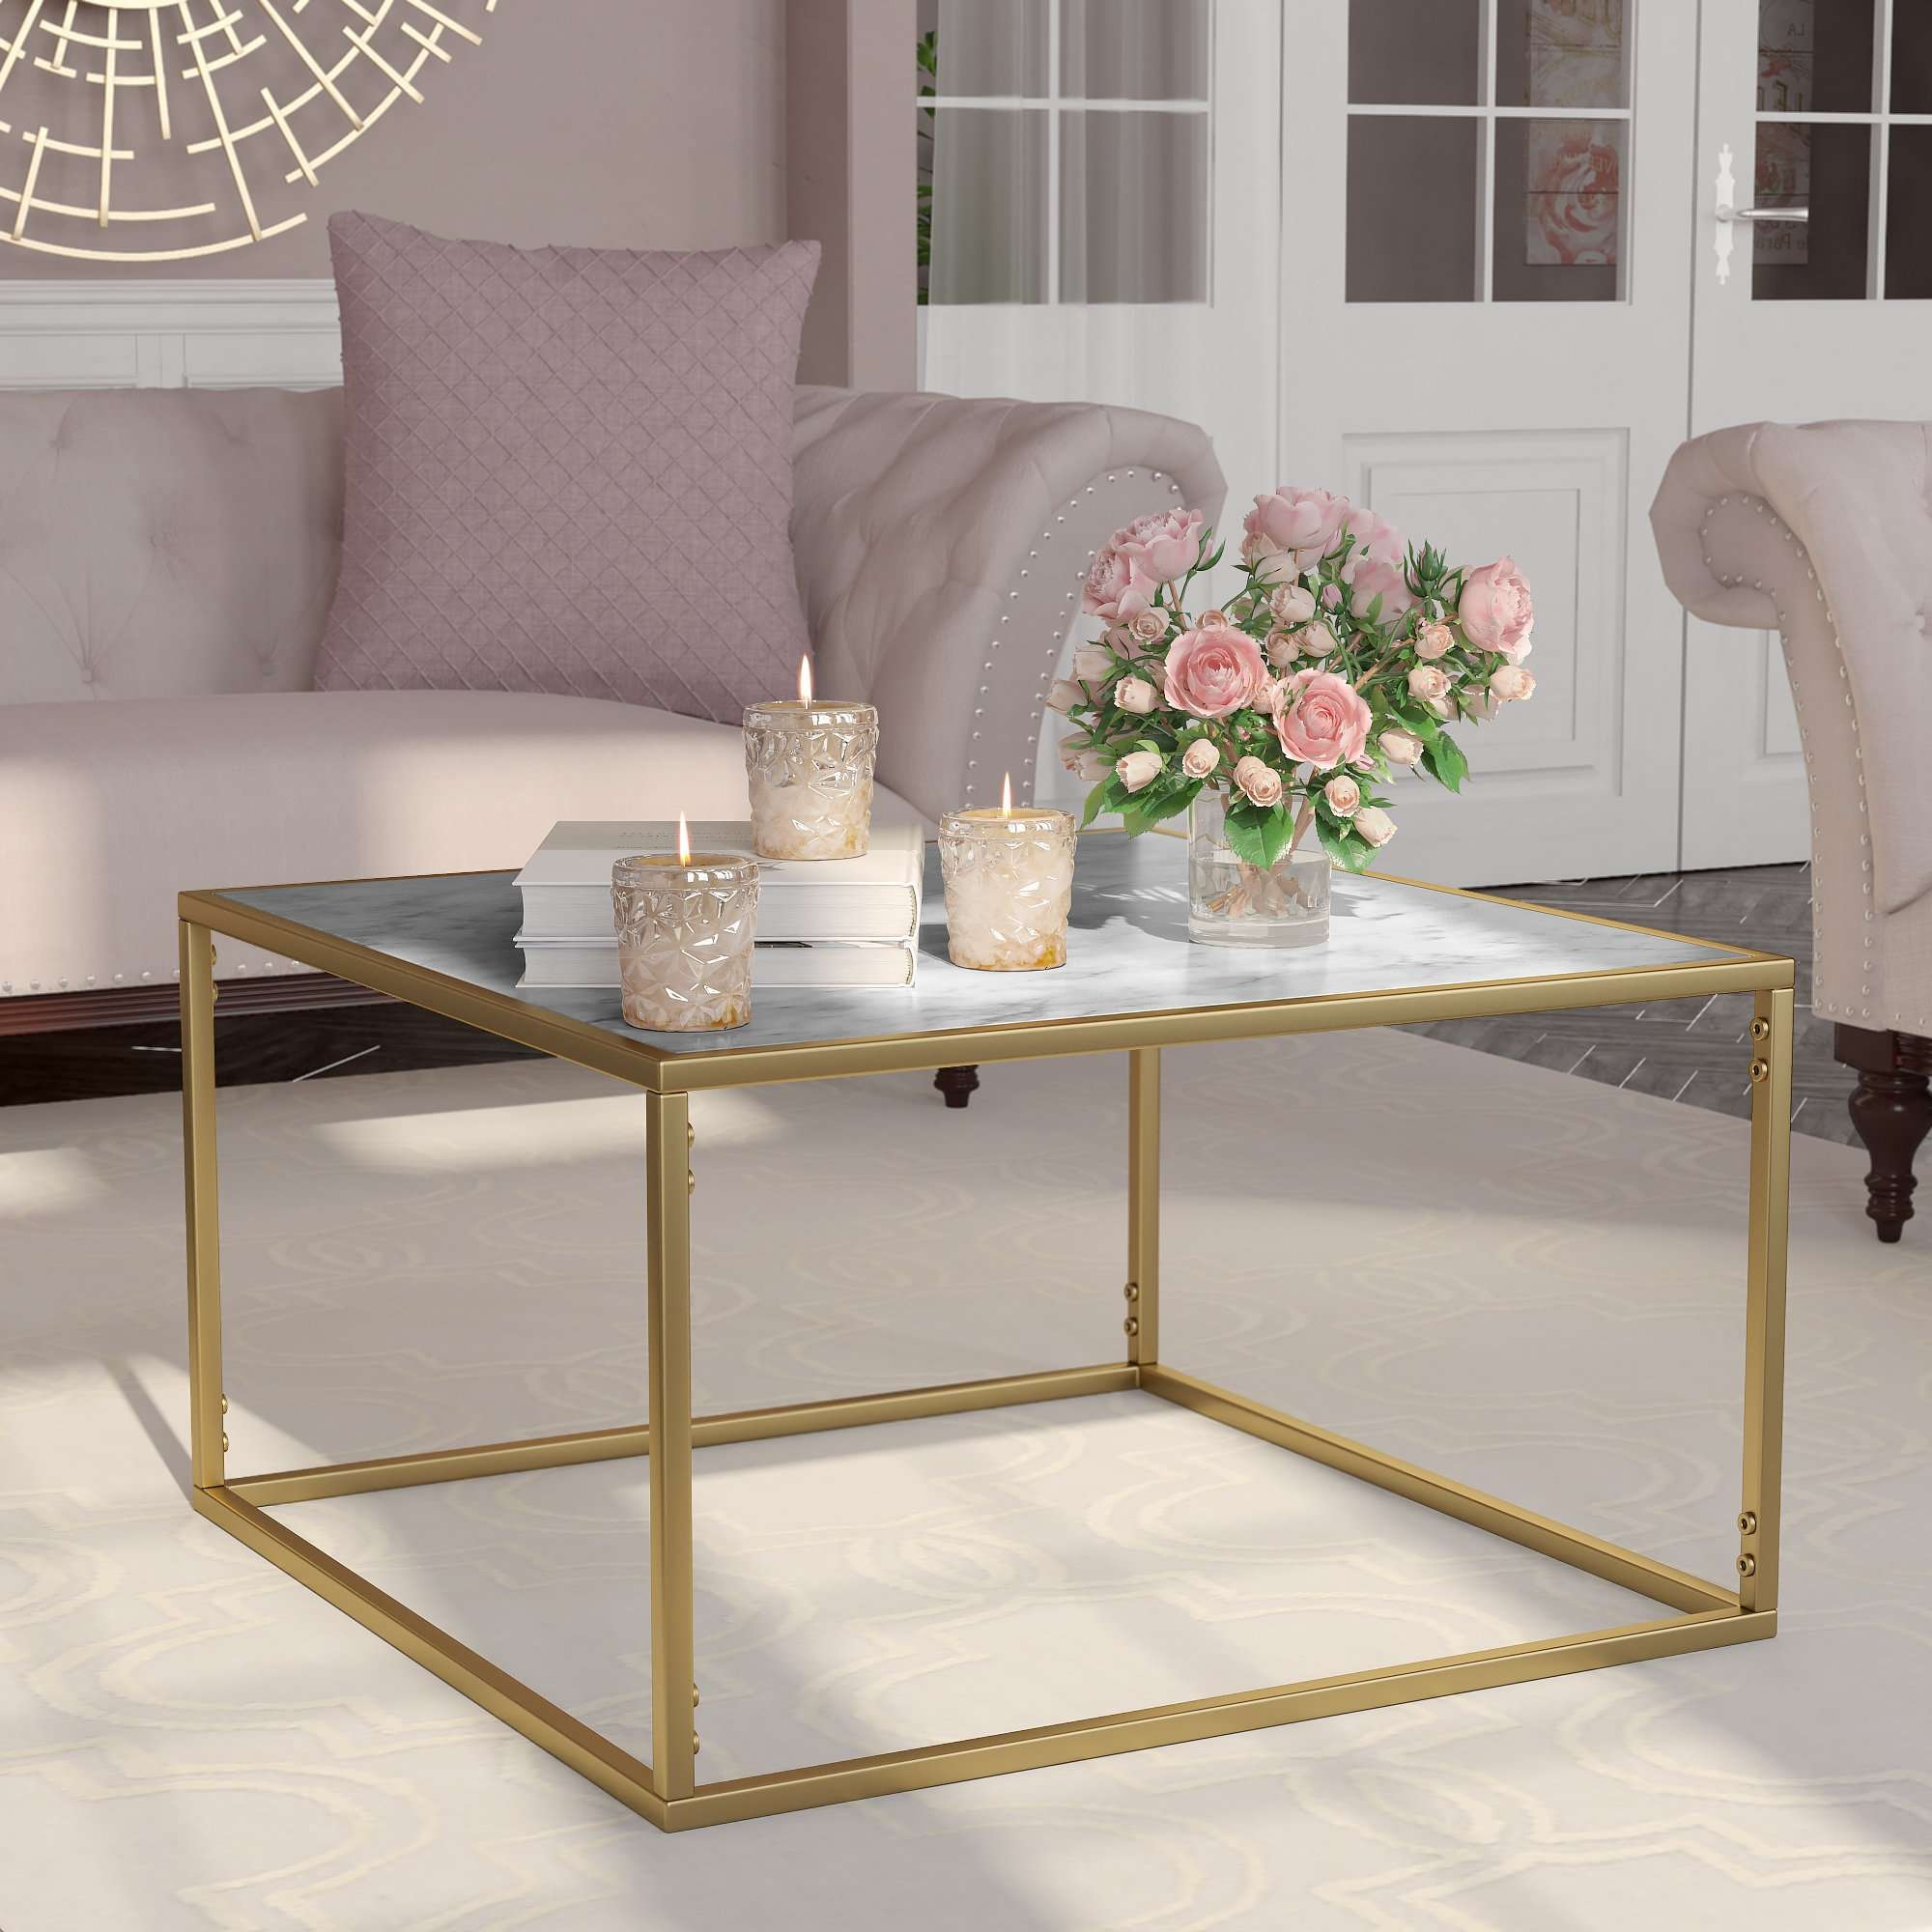 Marble/granite Top Coffee Tables You'll Love (View 4 of 20)